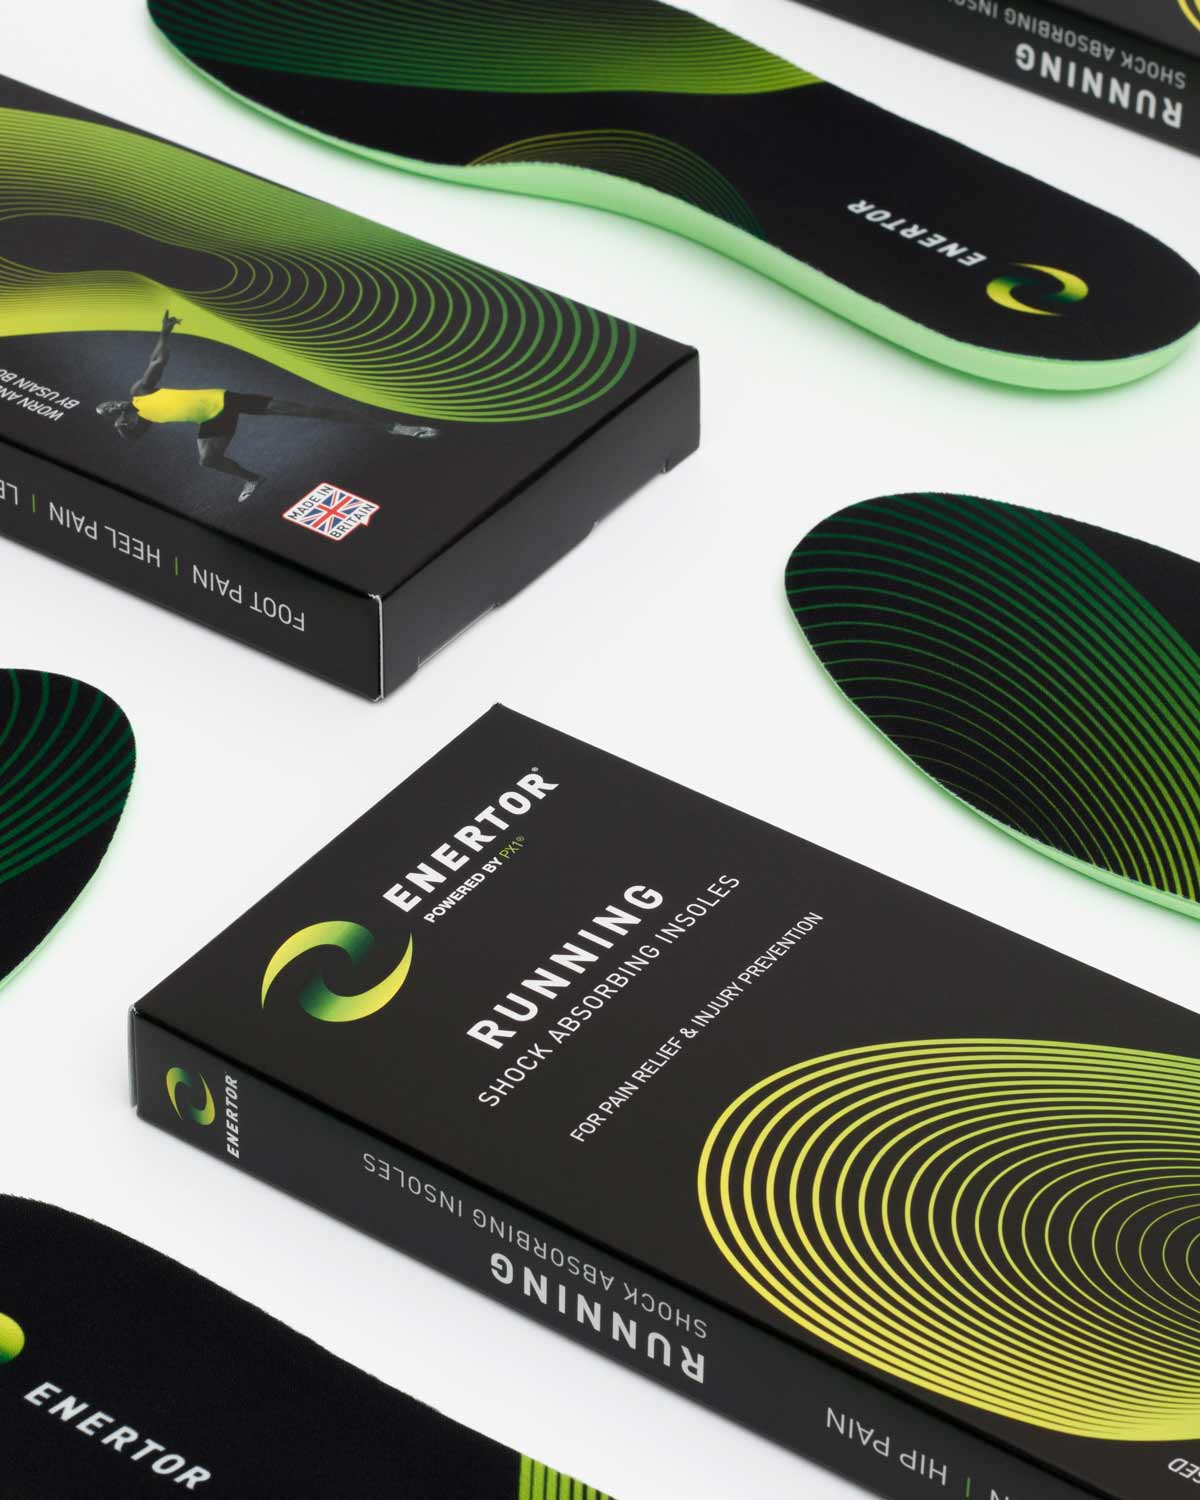 Enertor Running Insoles Group